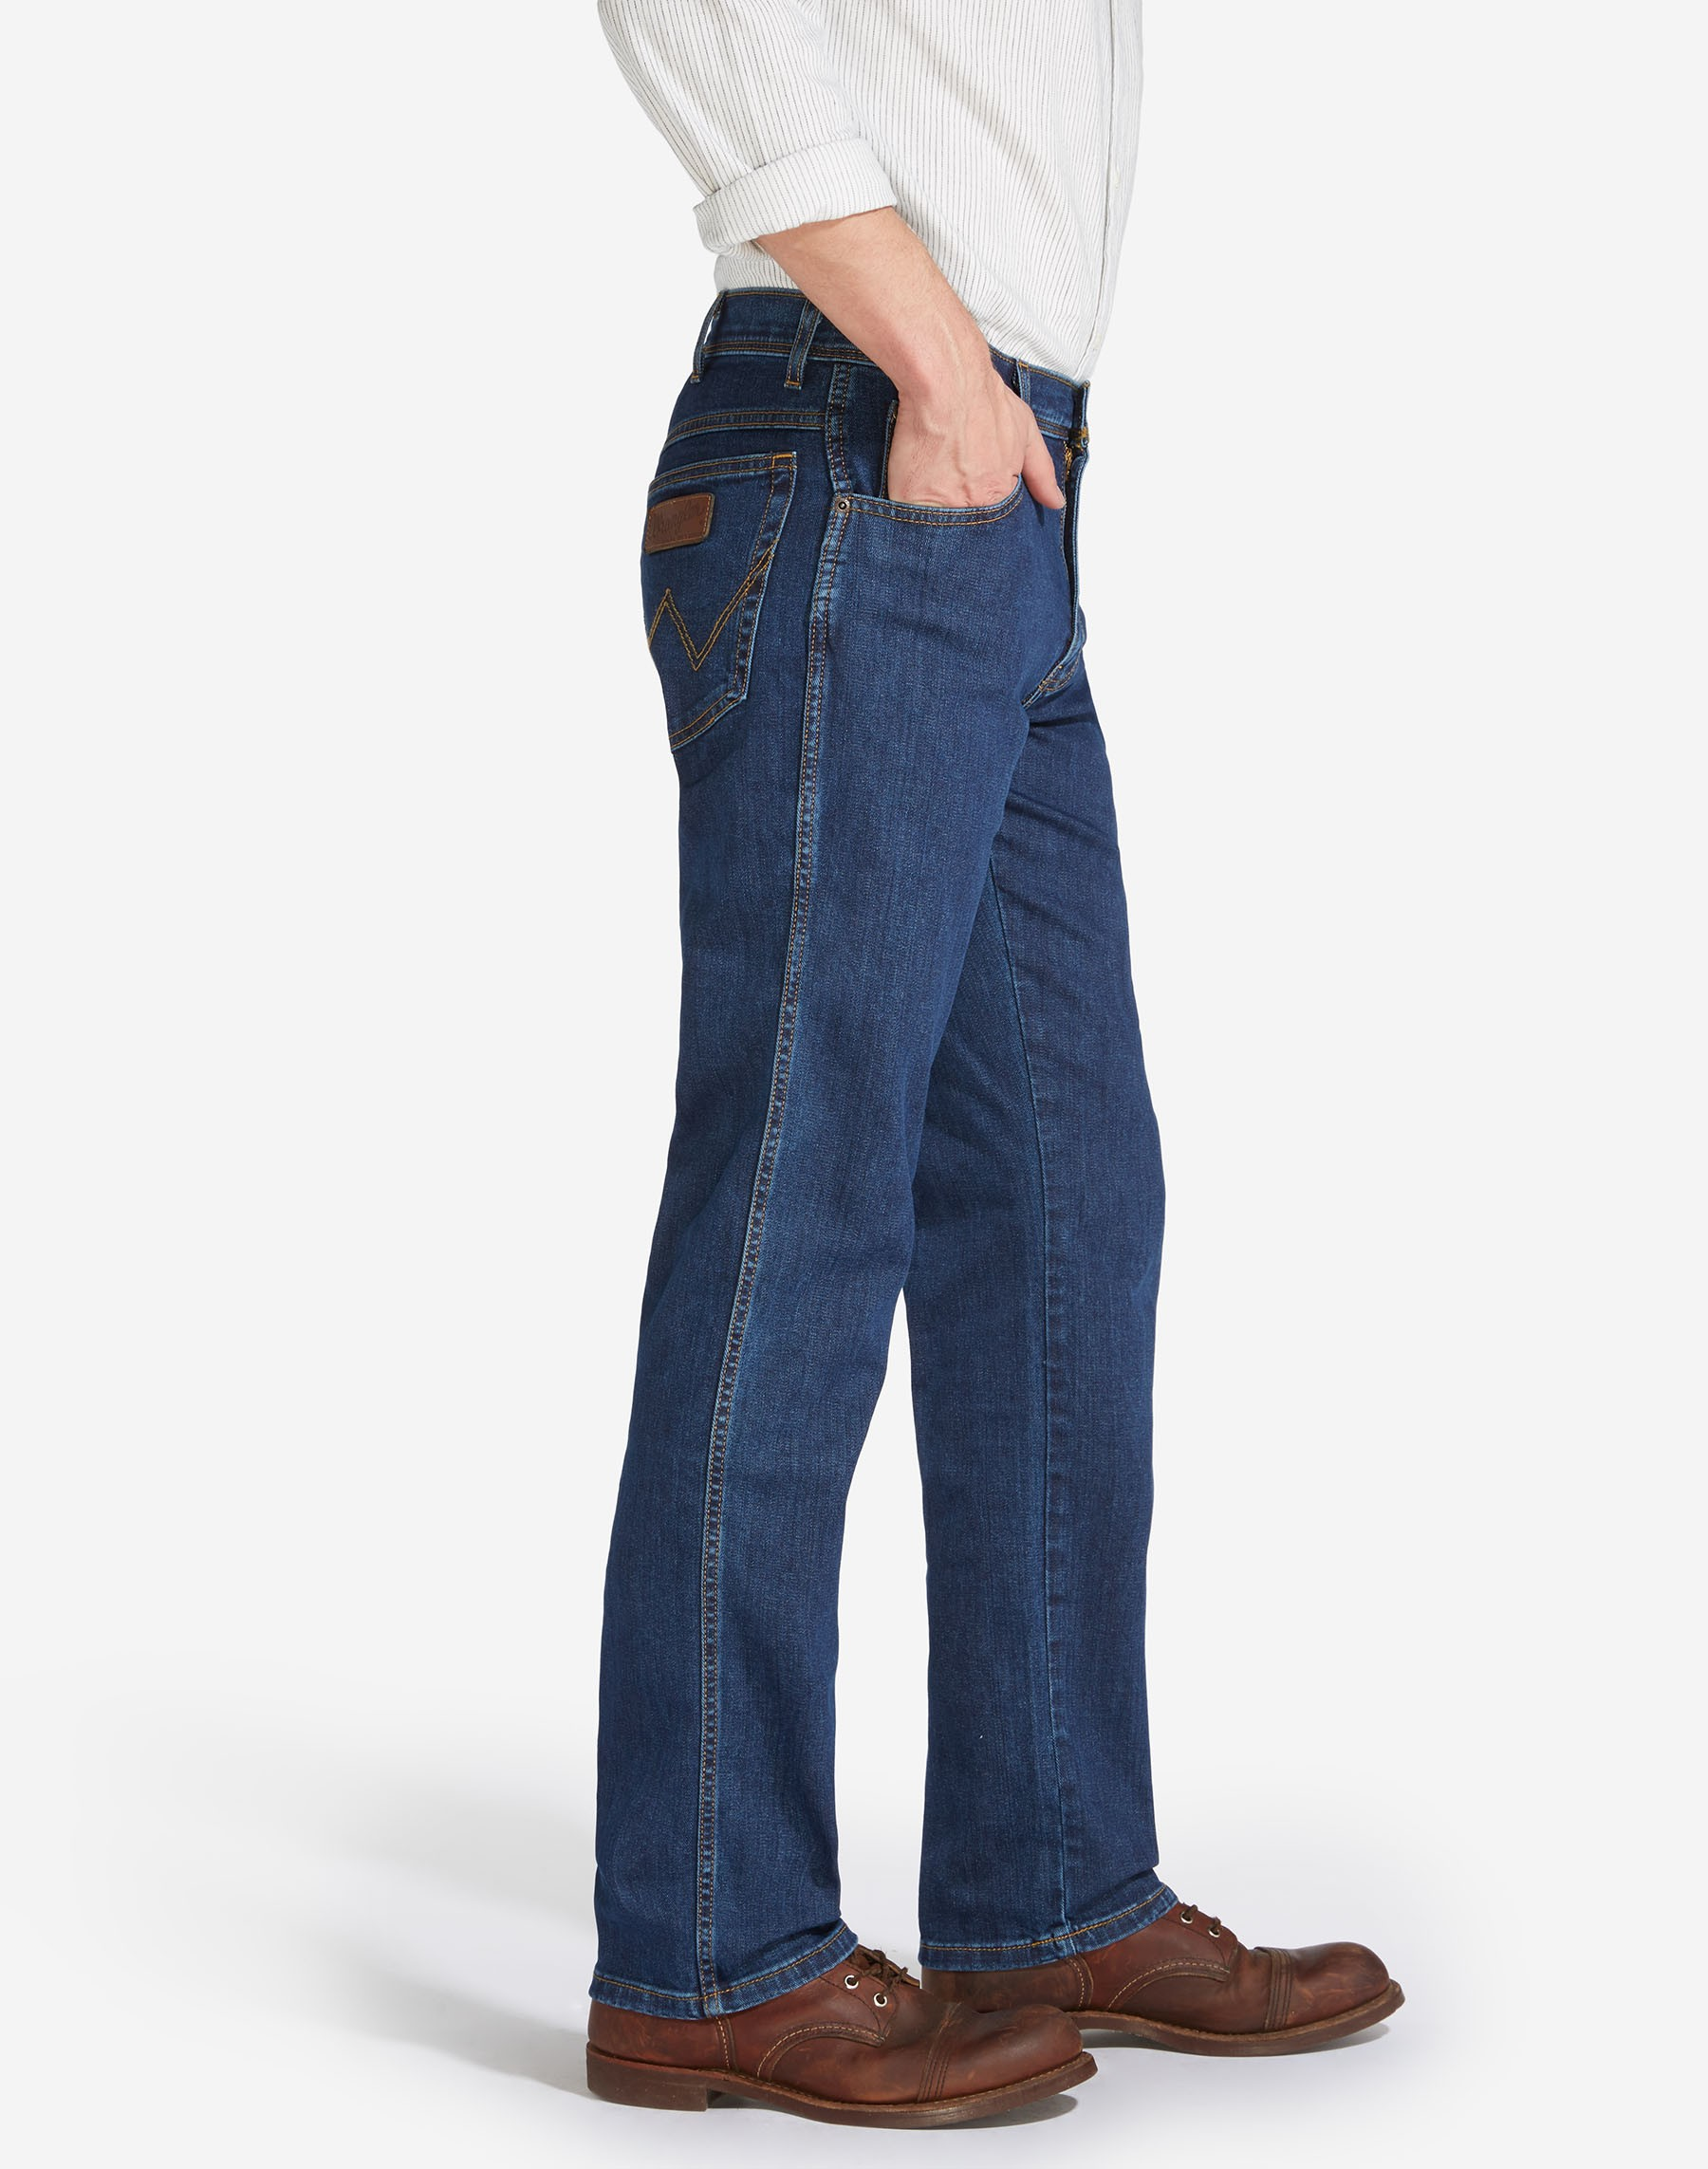 Mens-Wrangler-039-Texas-039-Jeans-Denim-Stretch-Original-Straight-Fit thumbnail 10